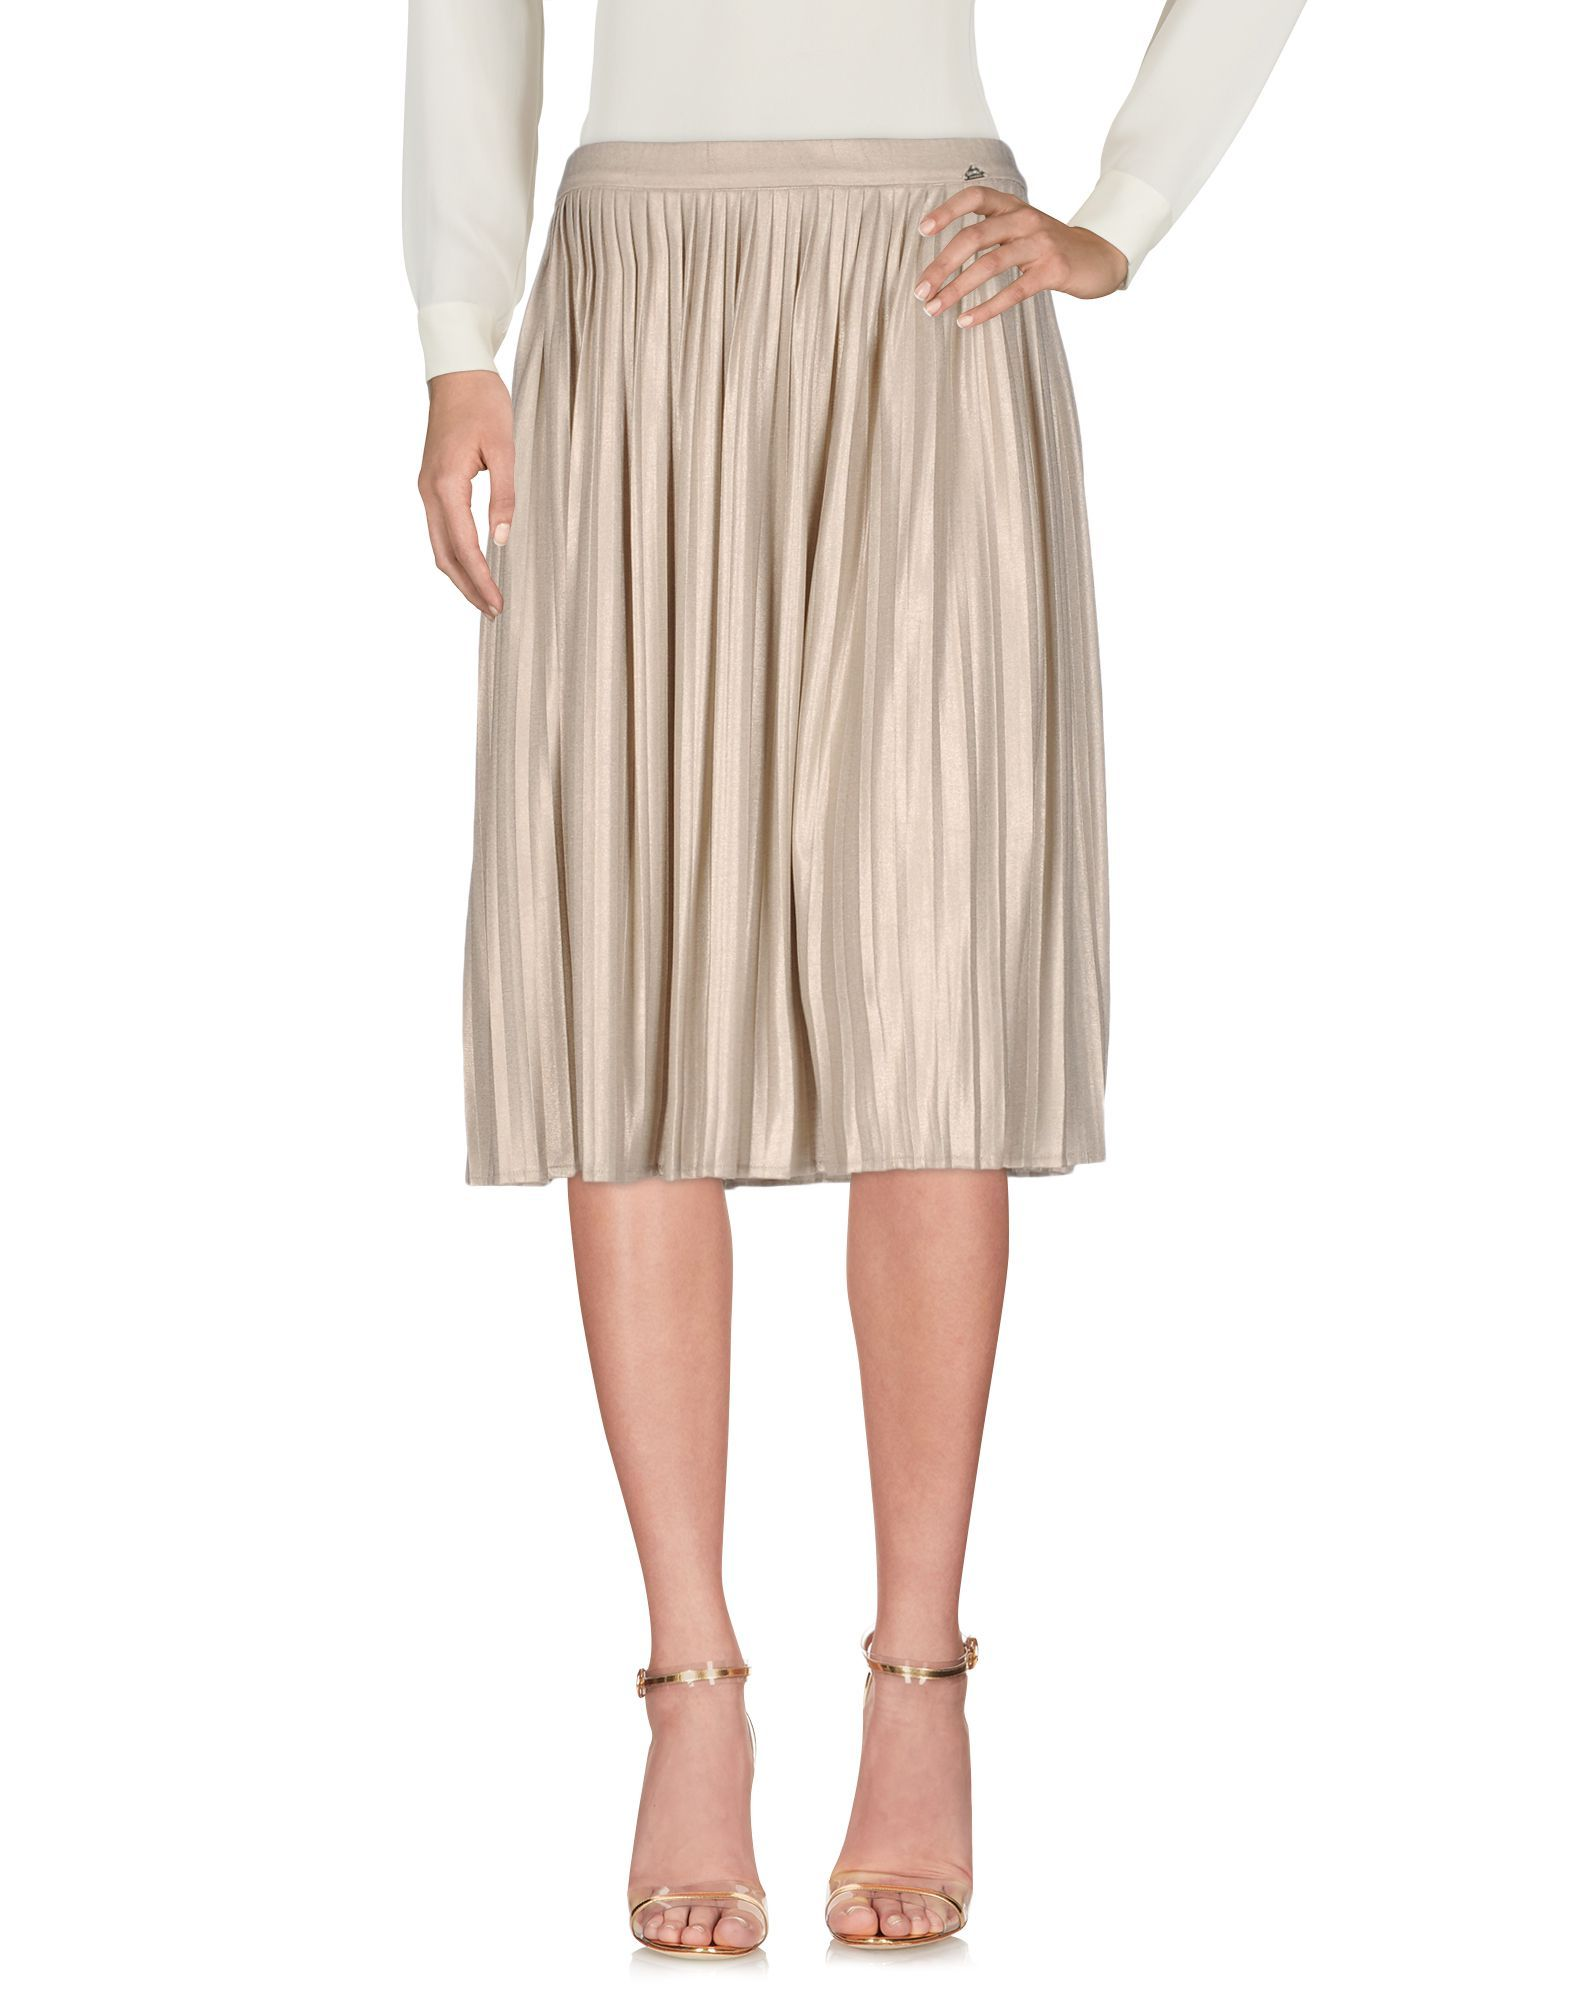 Liu Jo Beige Pleated Knee Length Skirt